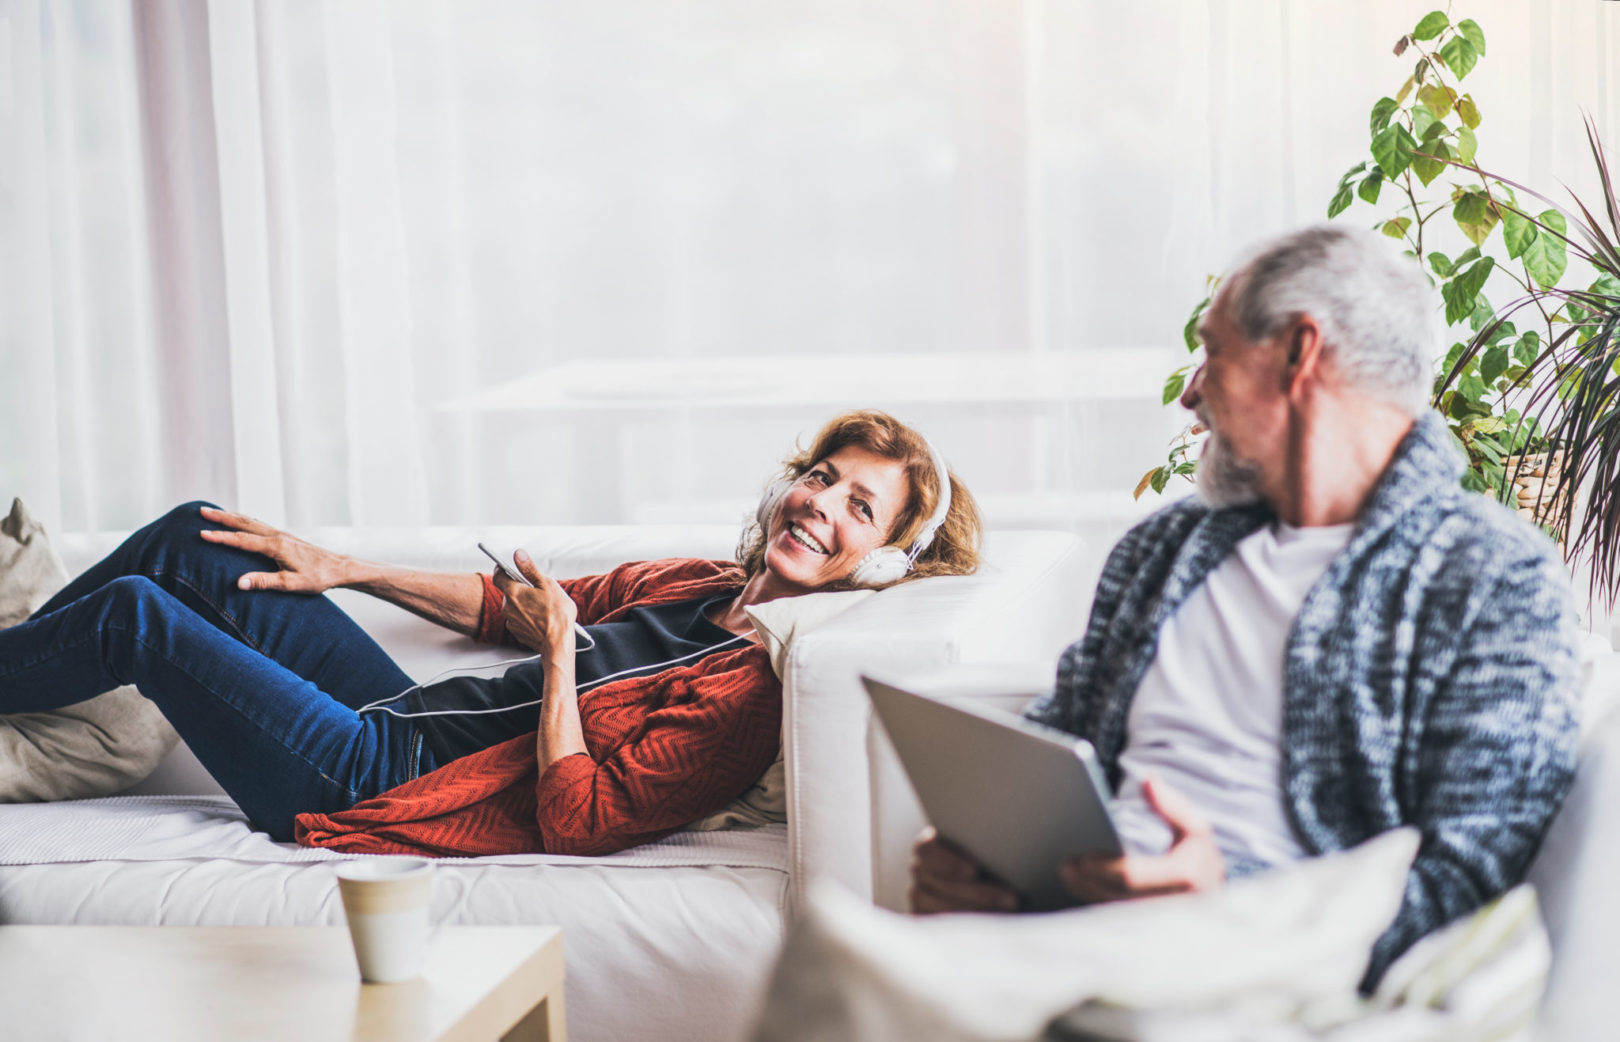 Senior couple with tablet and smartphone relaxing at home.